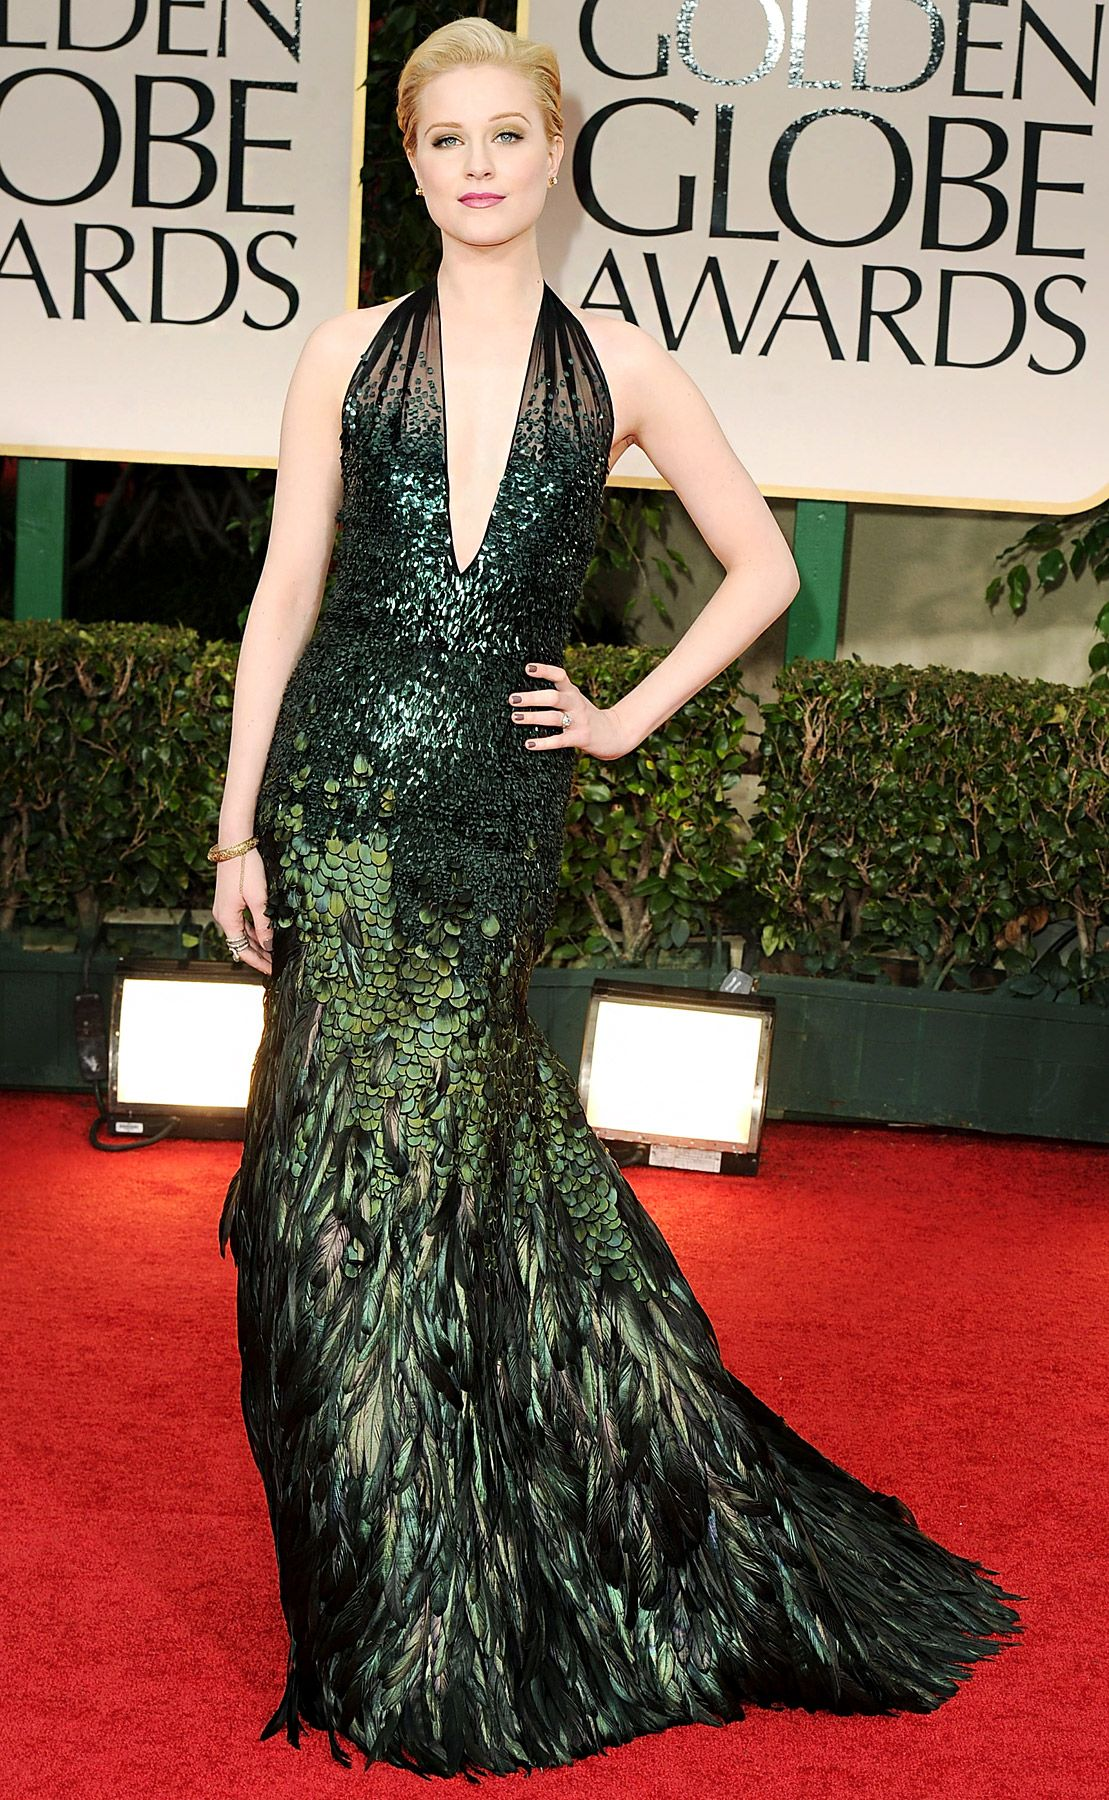 Evan Rachel Wood The newly-engaged star won rave reviews for this custom green sequin Gucci halter gown, which featured a sexy plunging neckline.